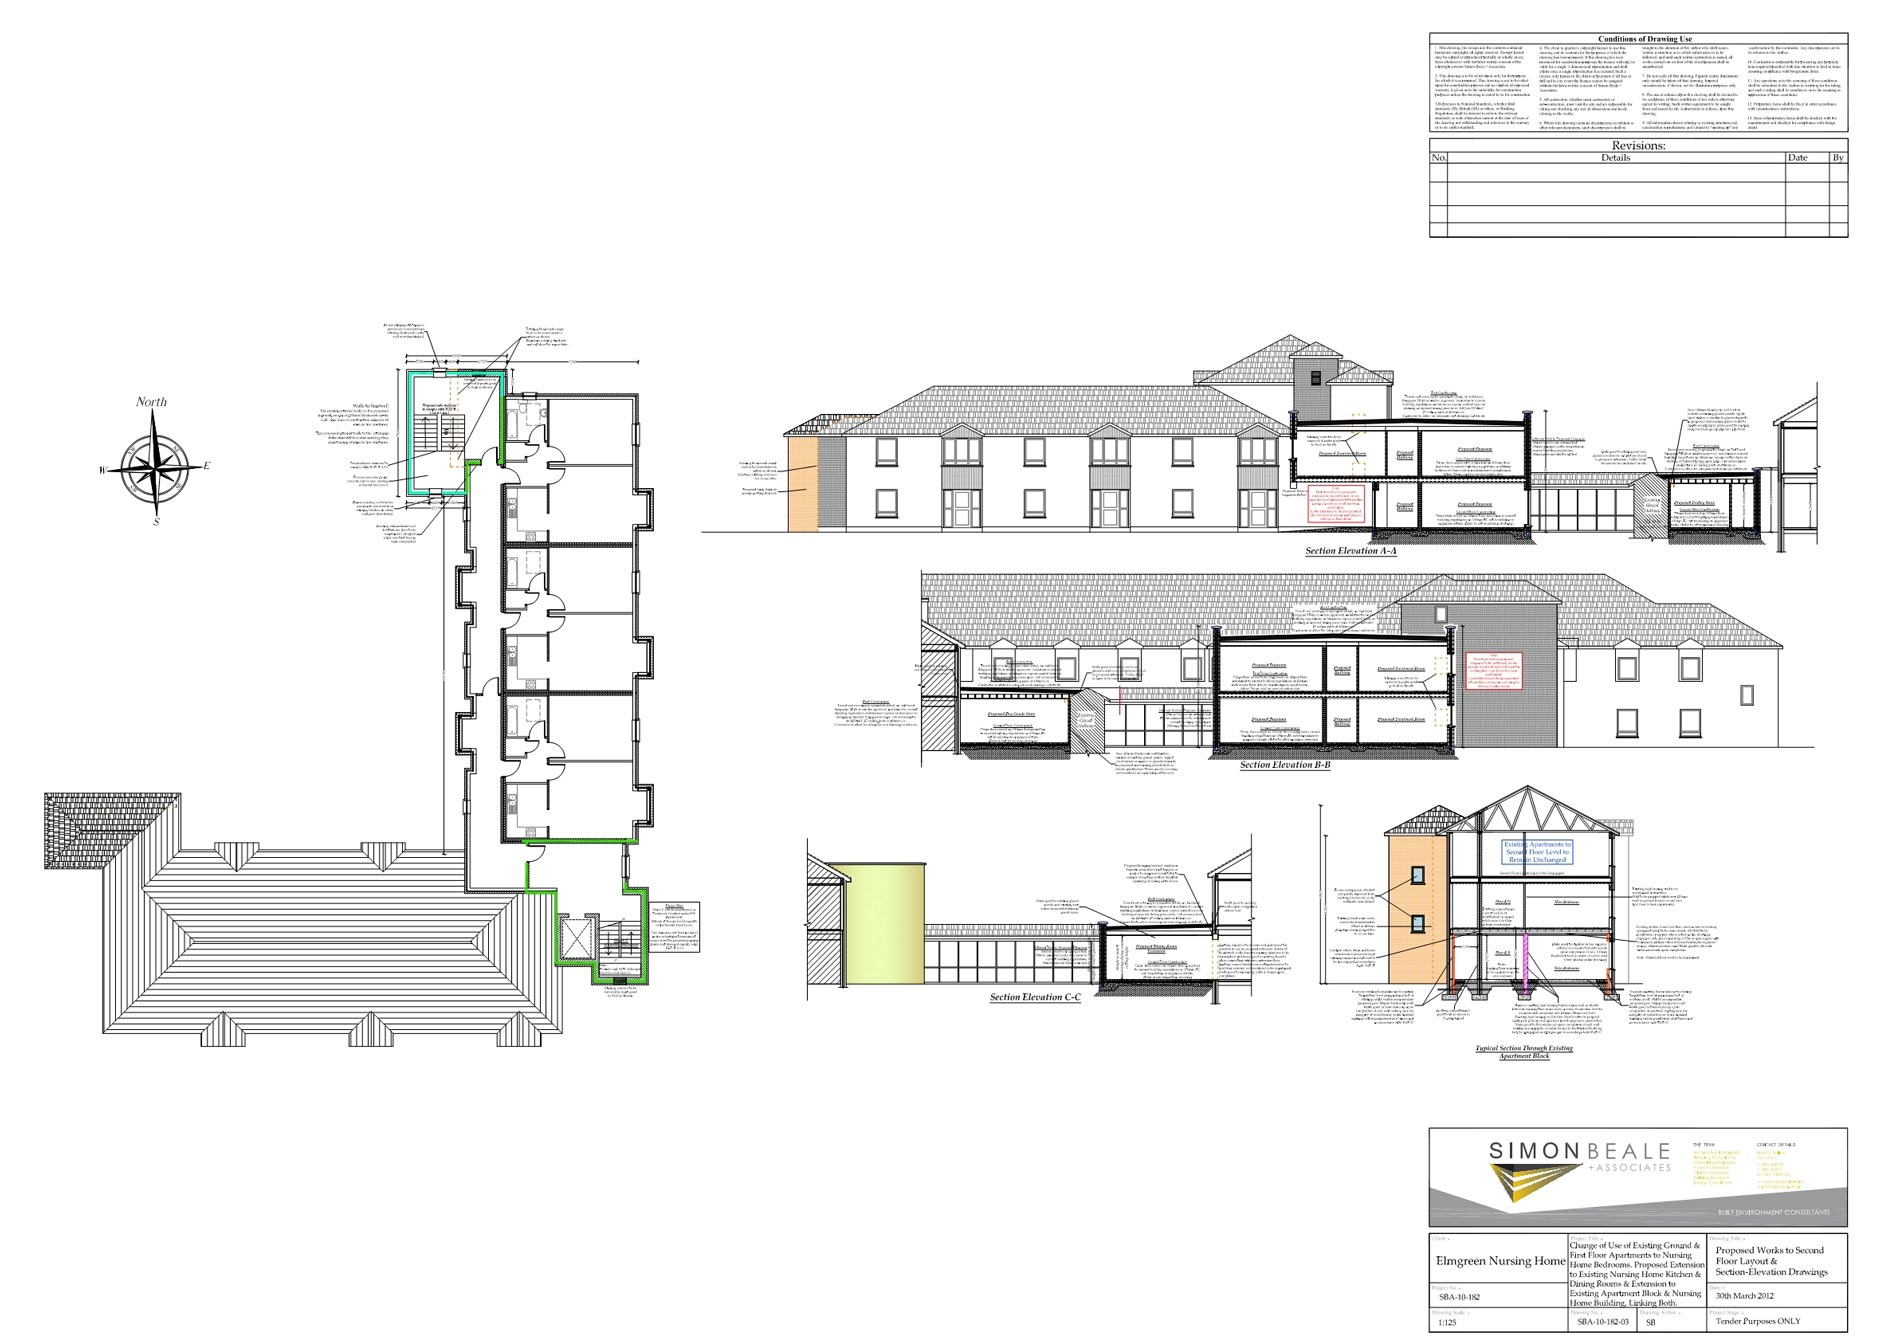 Sba-10-182-03_second_floor_plan__sections_pagenumber